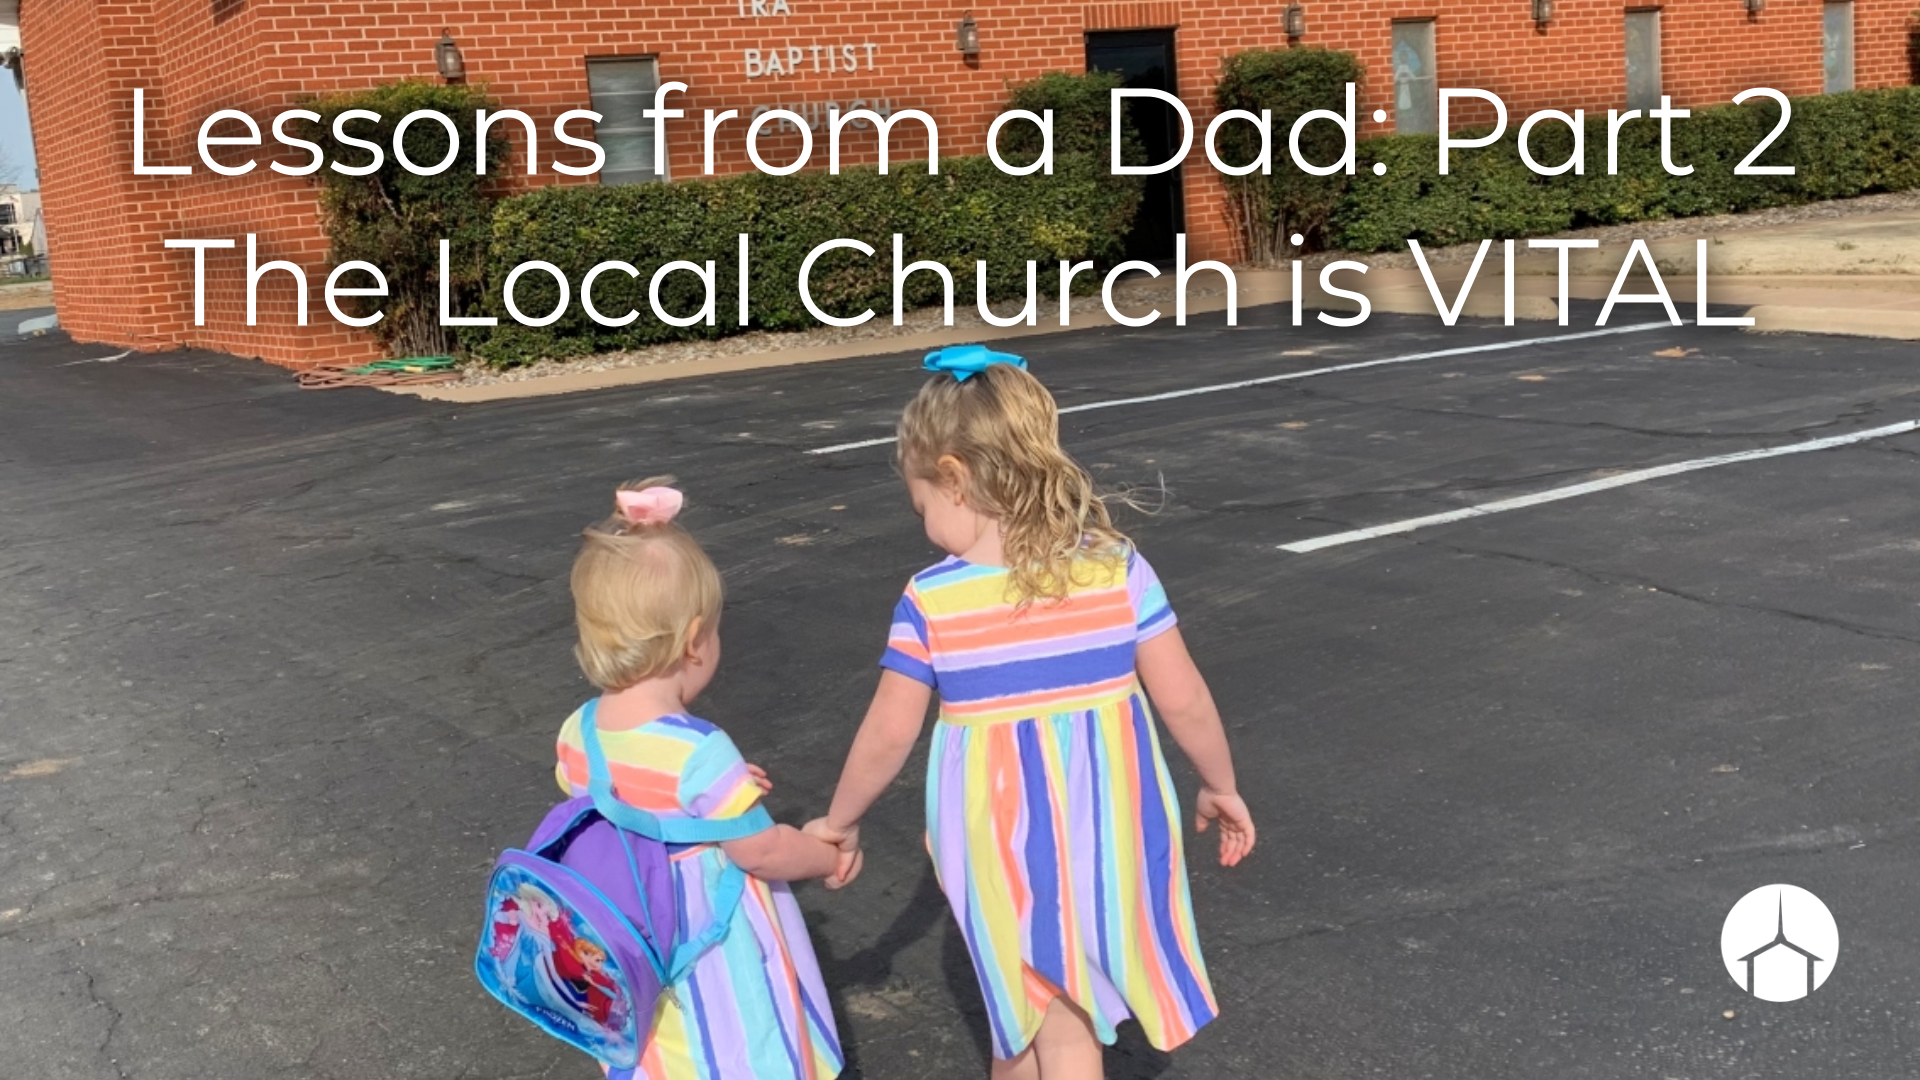 Lessons from a Dad: Part 2, The Local Church is VITAL